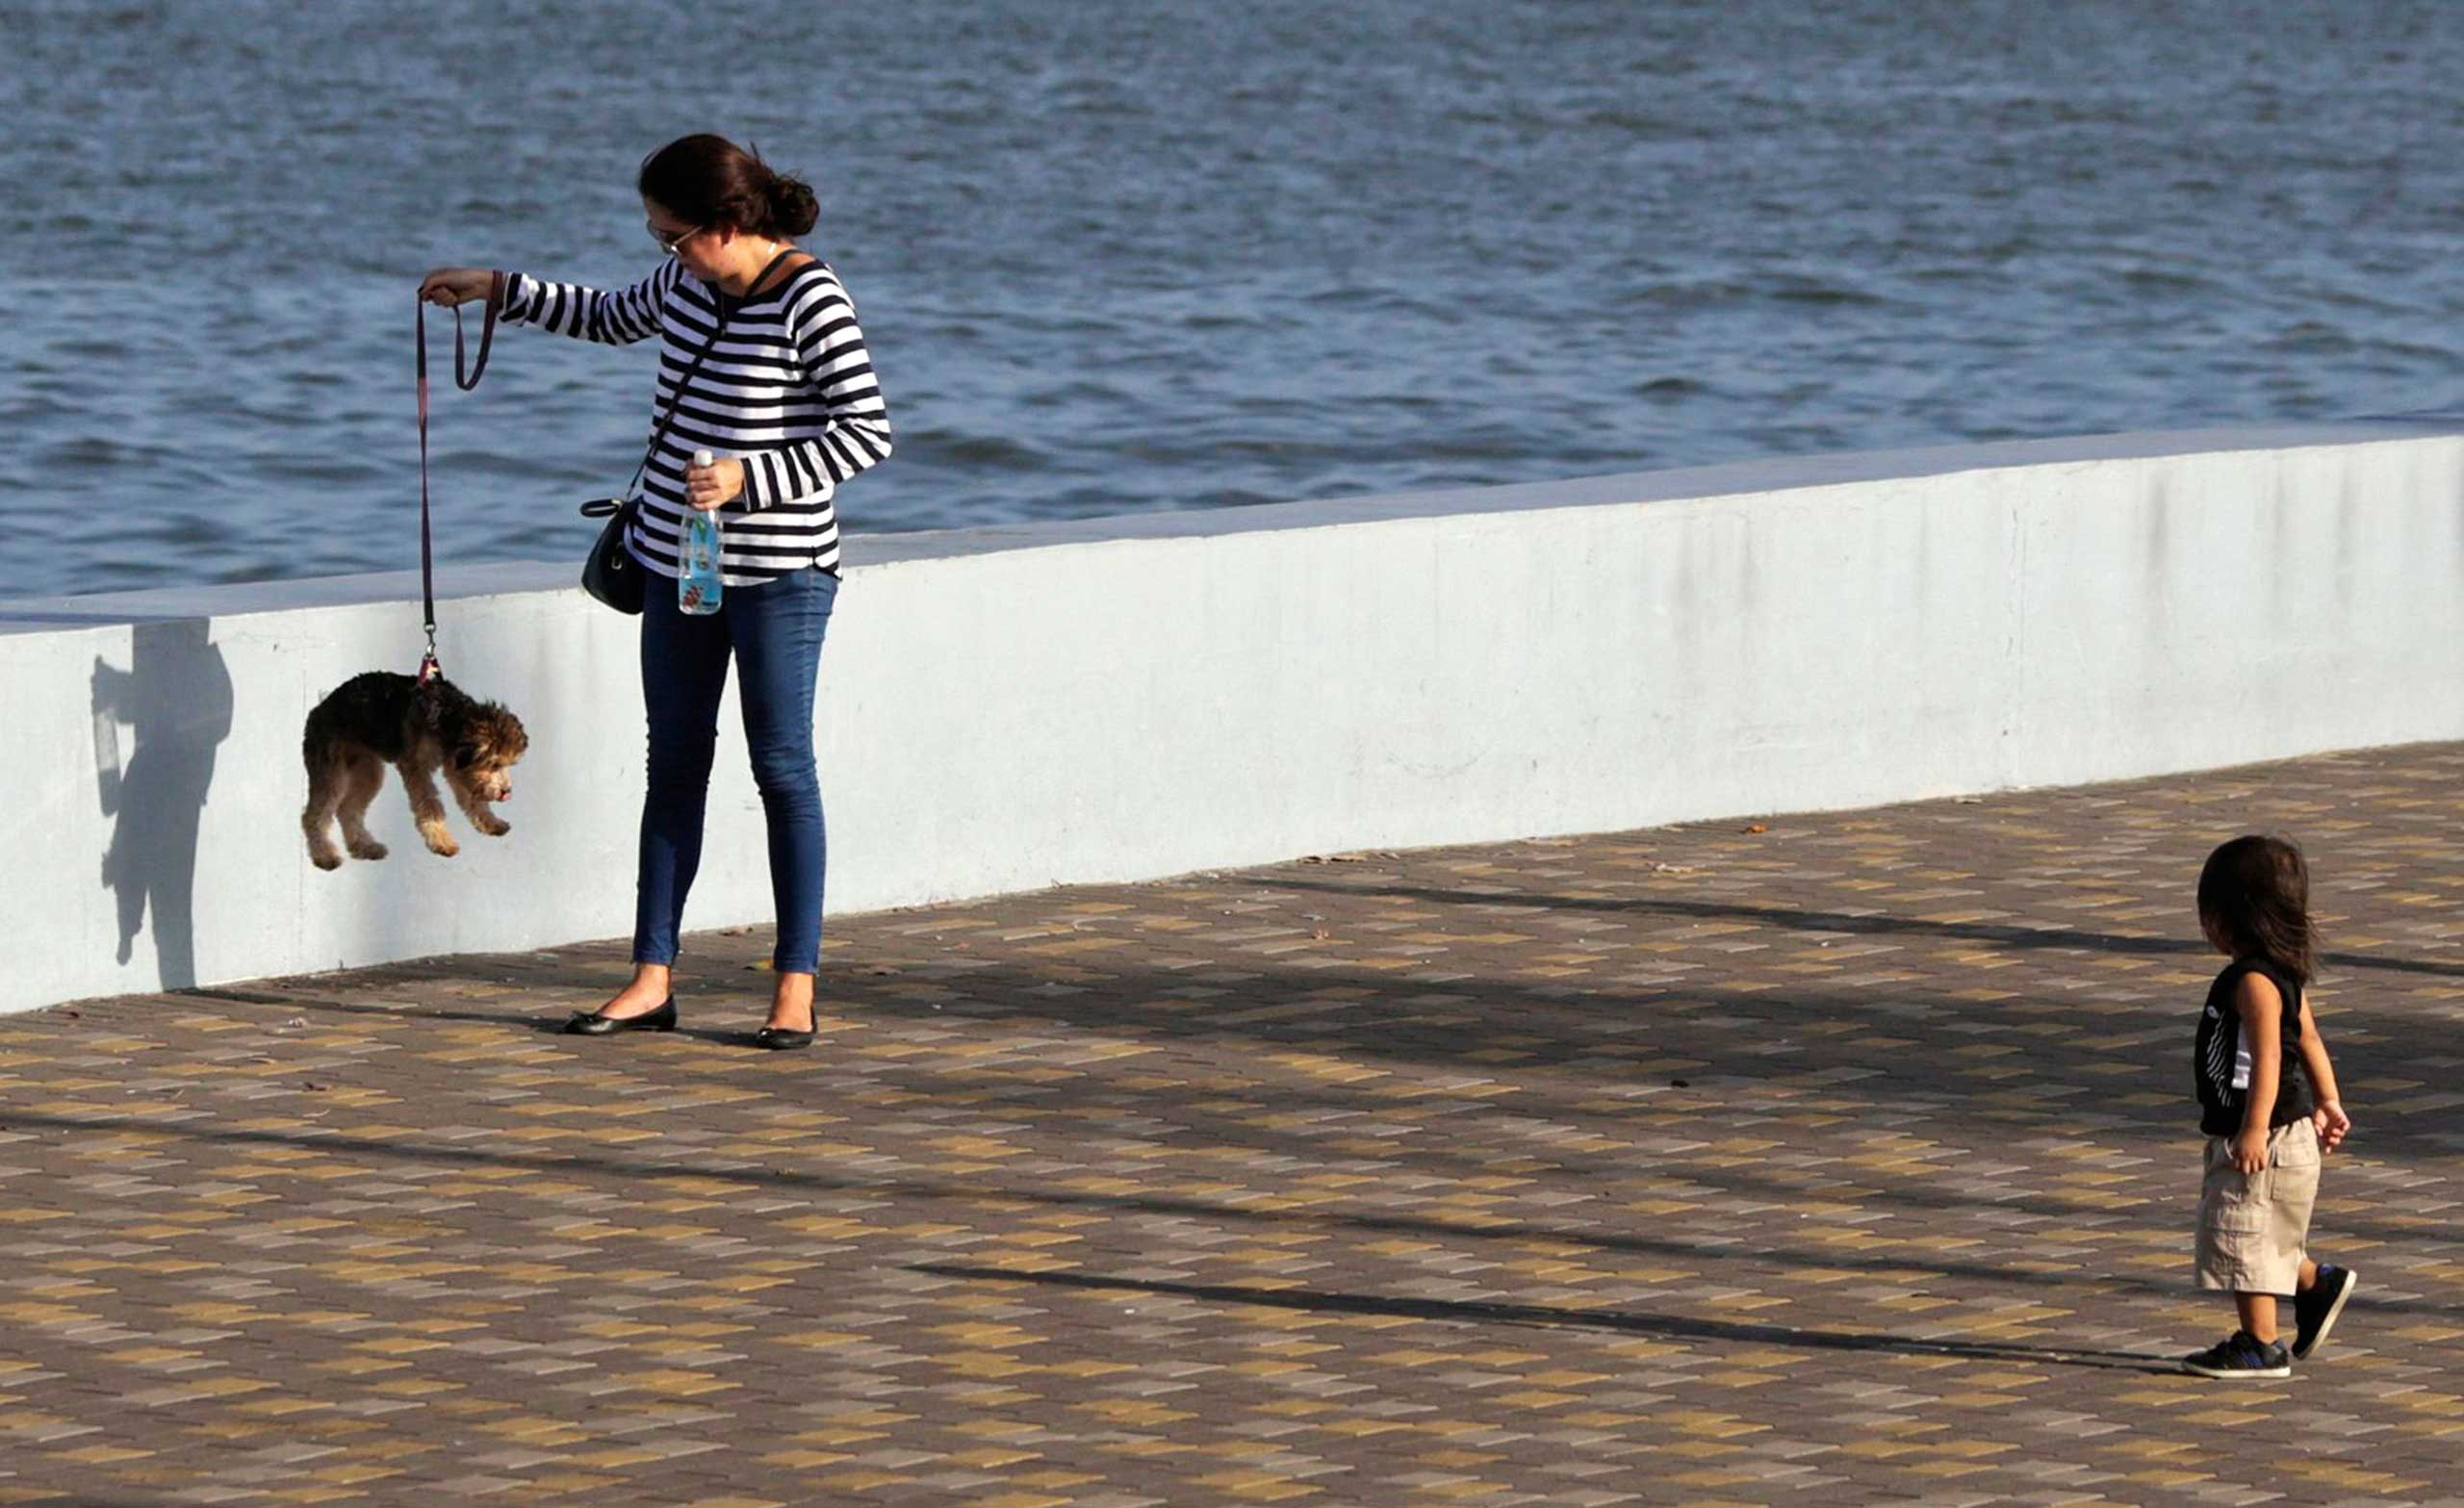 A woman lifts a dog on a leash along the seafront in Panama City Jan. 6, 2015.